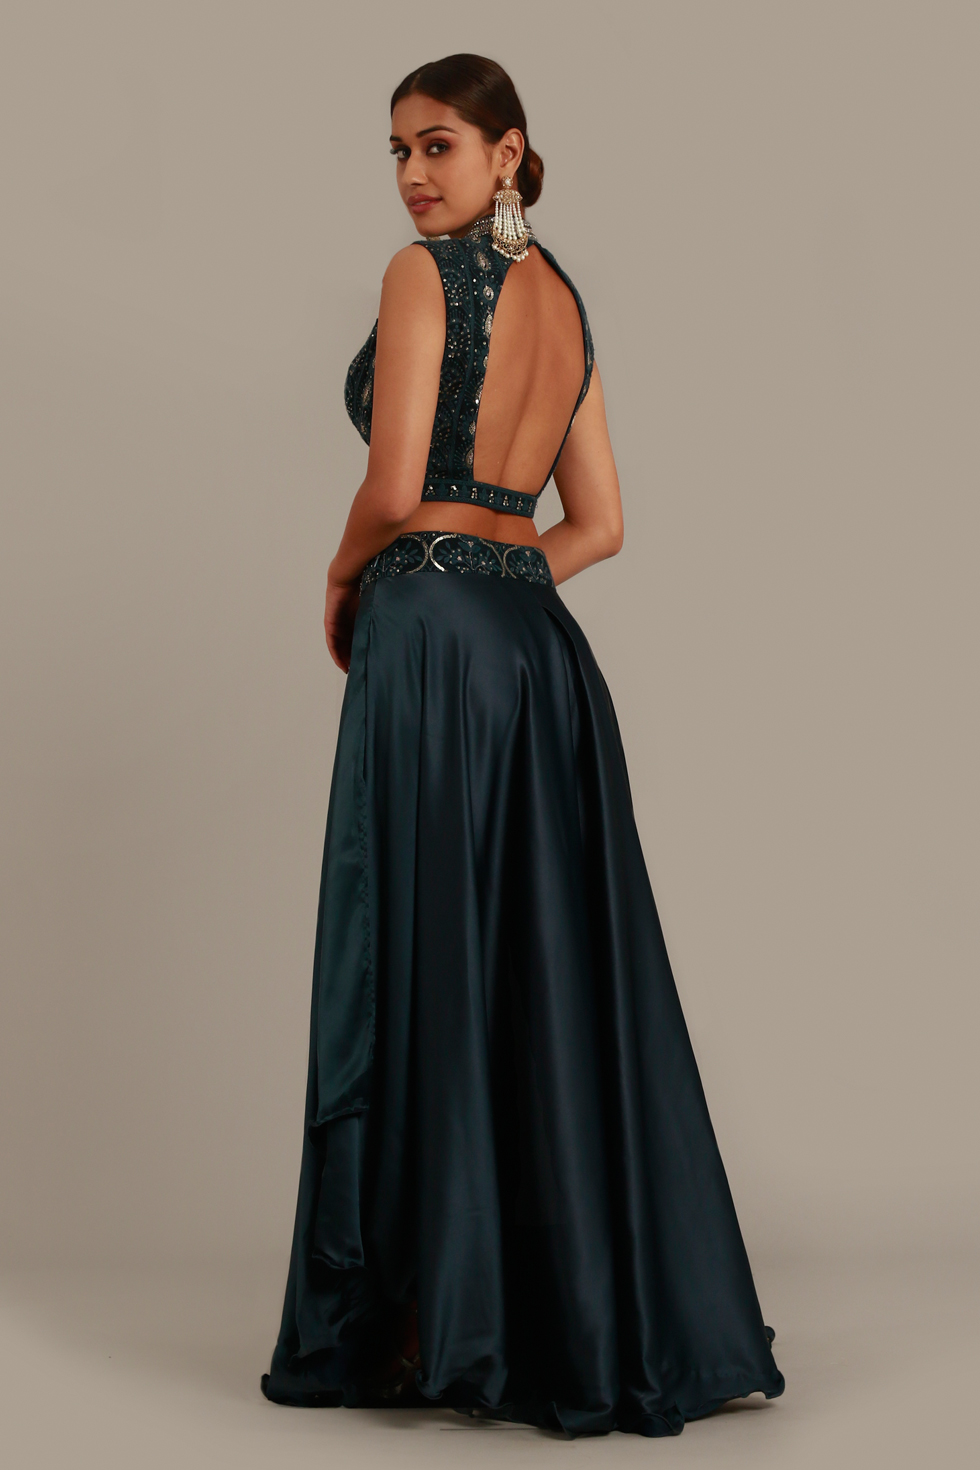 Dark grey draped palazzo pants with matching top, pale gold and thread highlights and matching dupatta